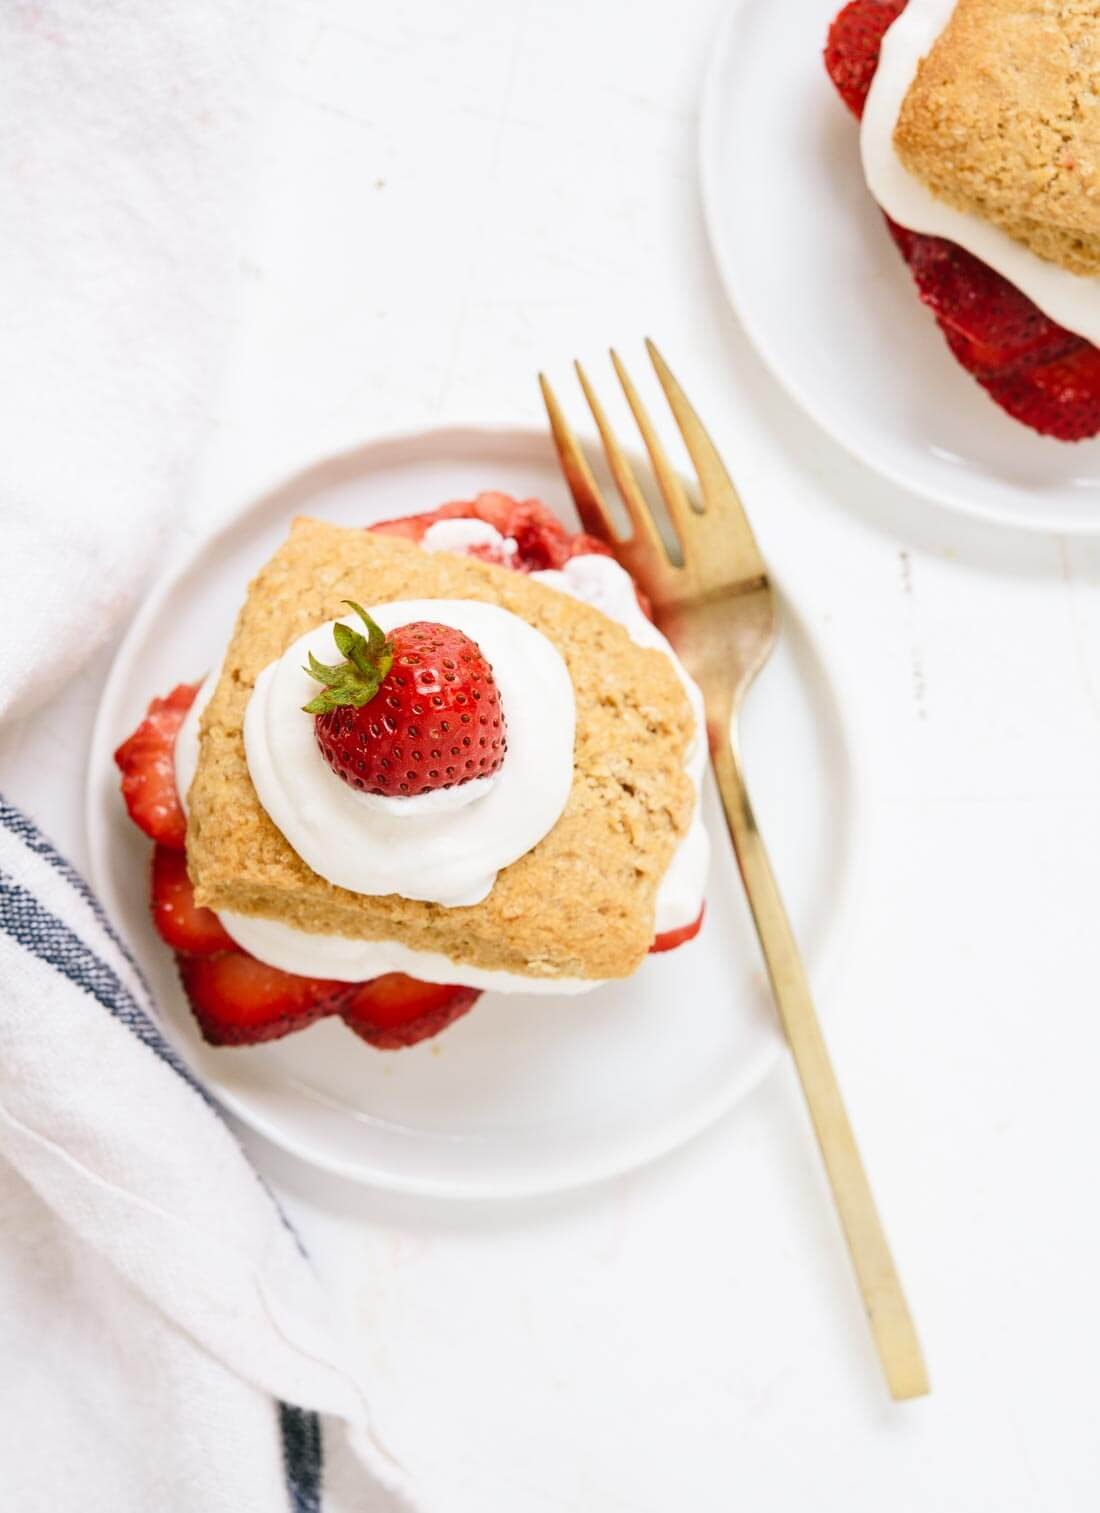 This strawberry shortcake recipe is the best! Naturally sweetened, whole grain, and delicious. cookieandkate.com